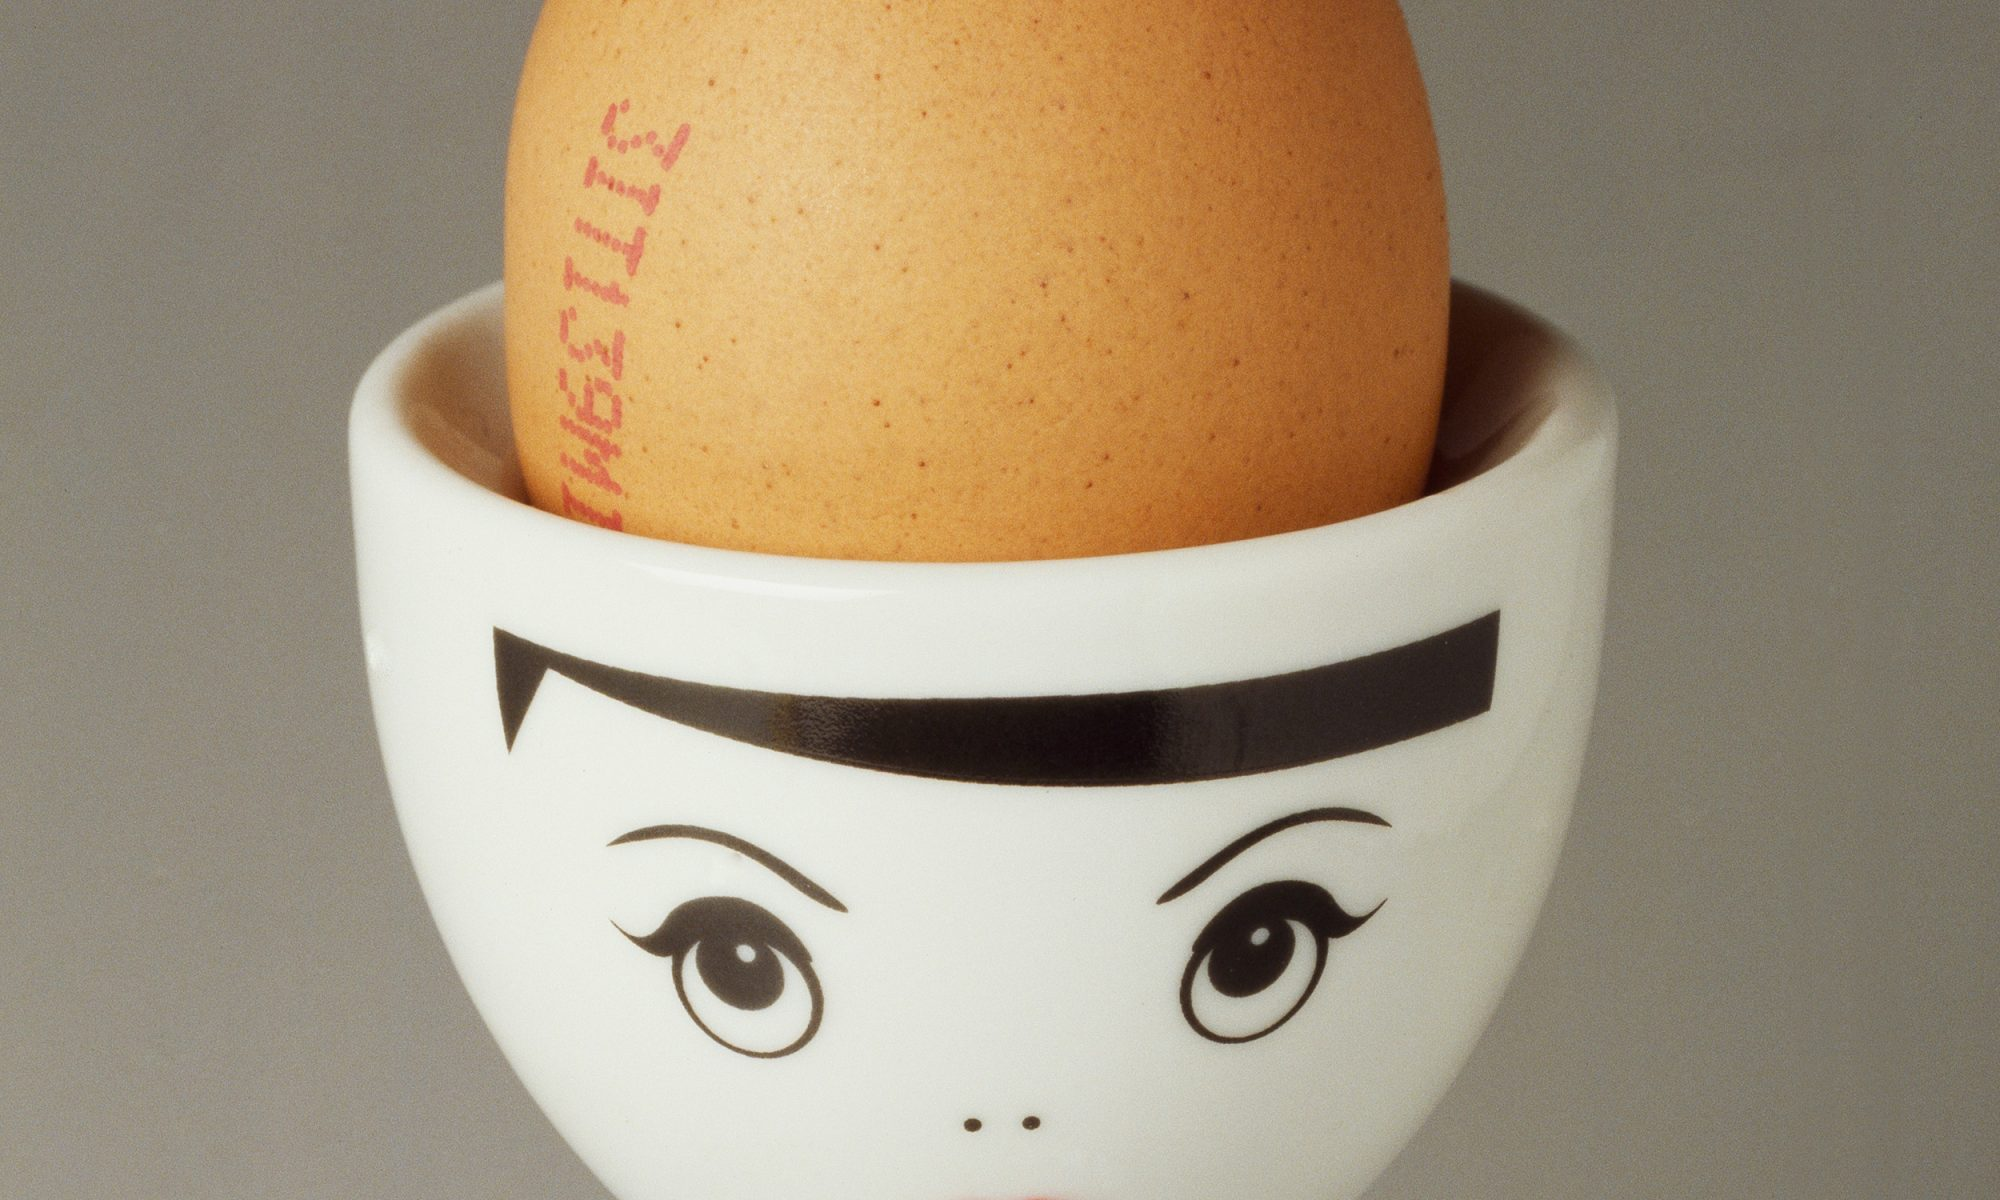 EC: How to Use an Egg Topper